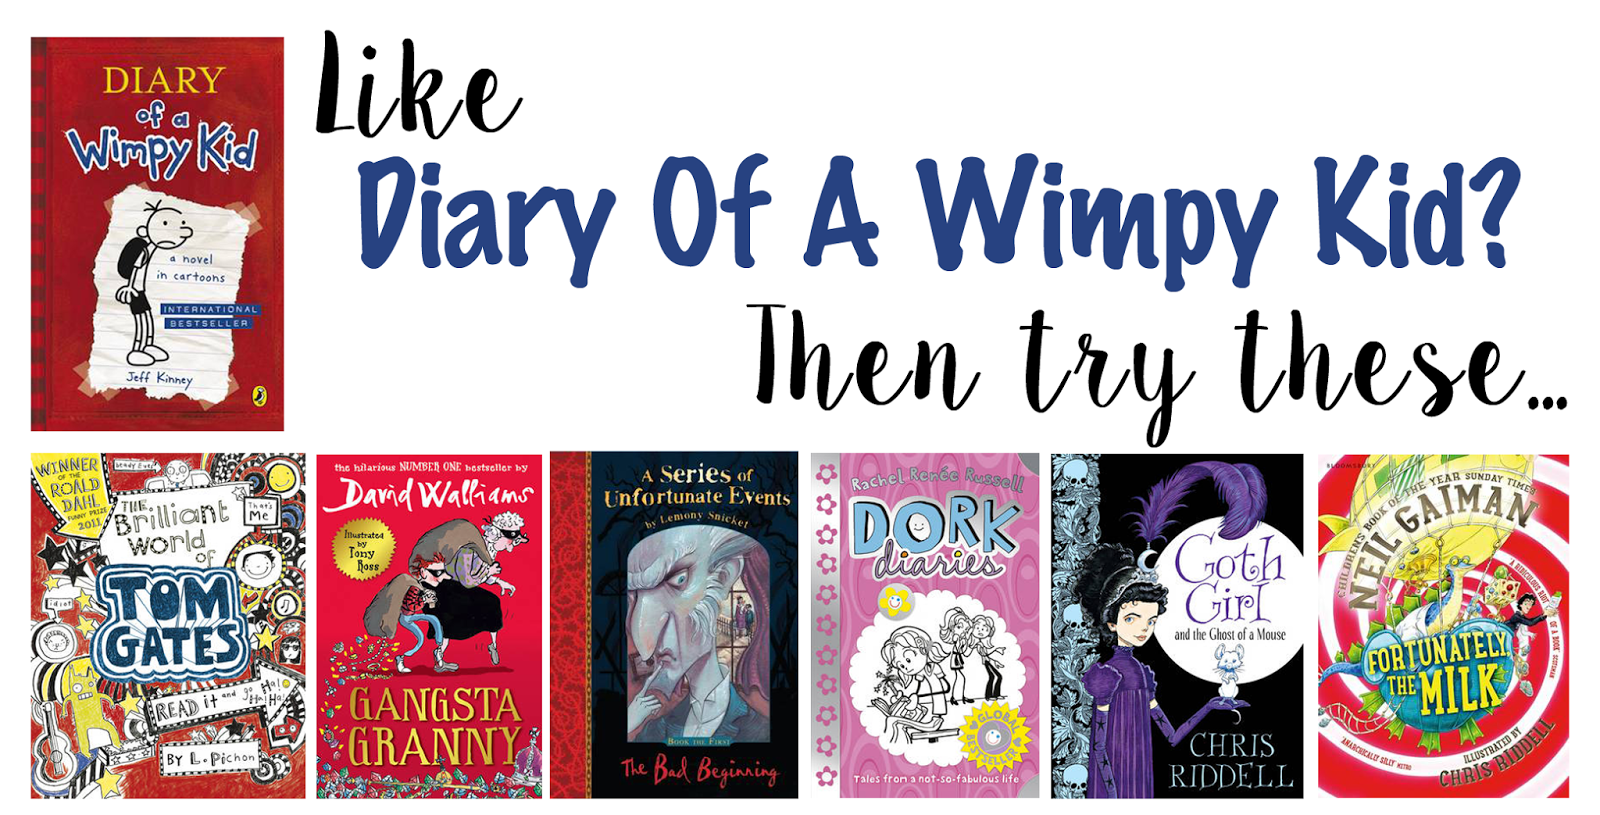 How Many Diary Of A Wimpy Kid Books Are There